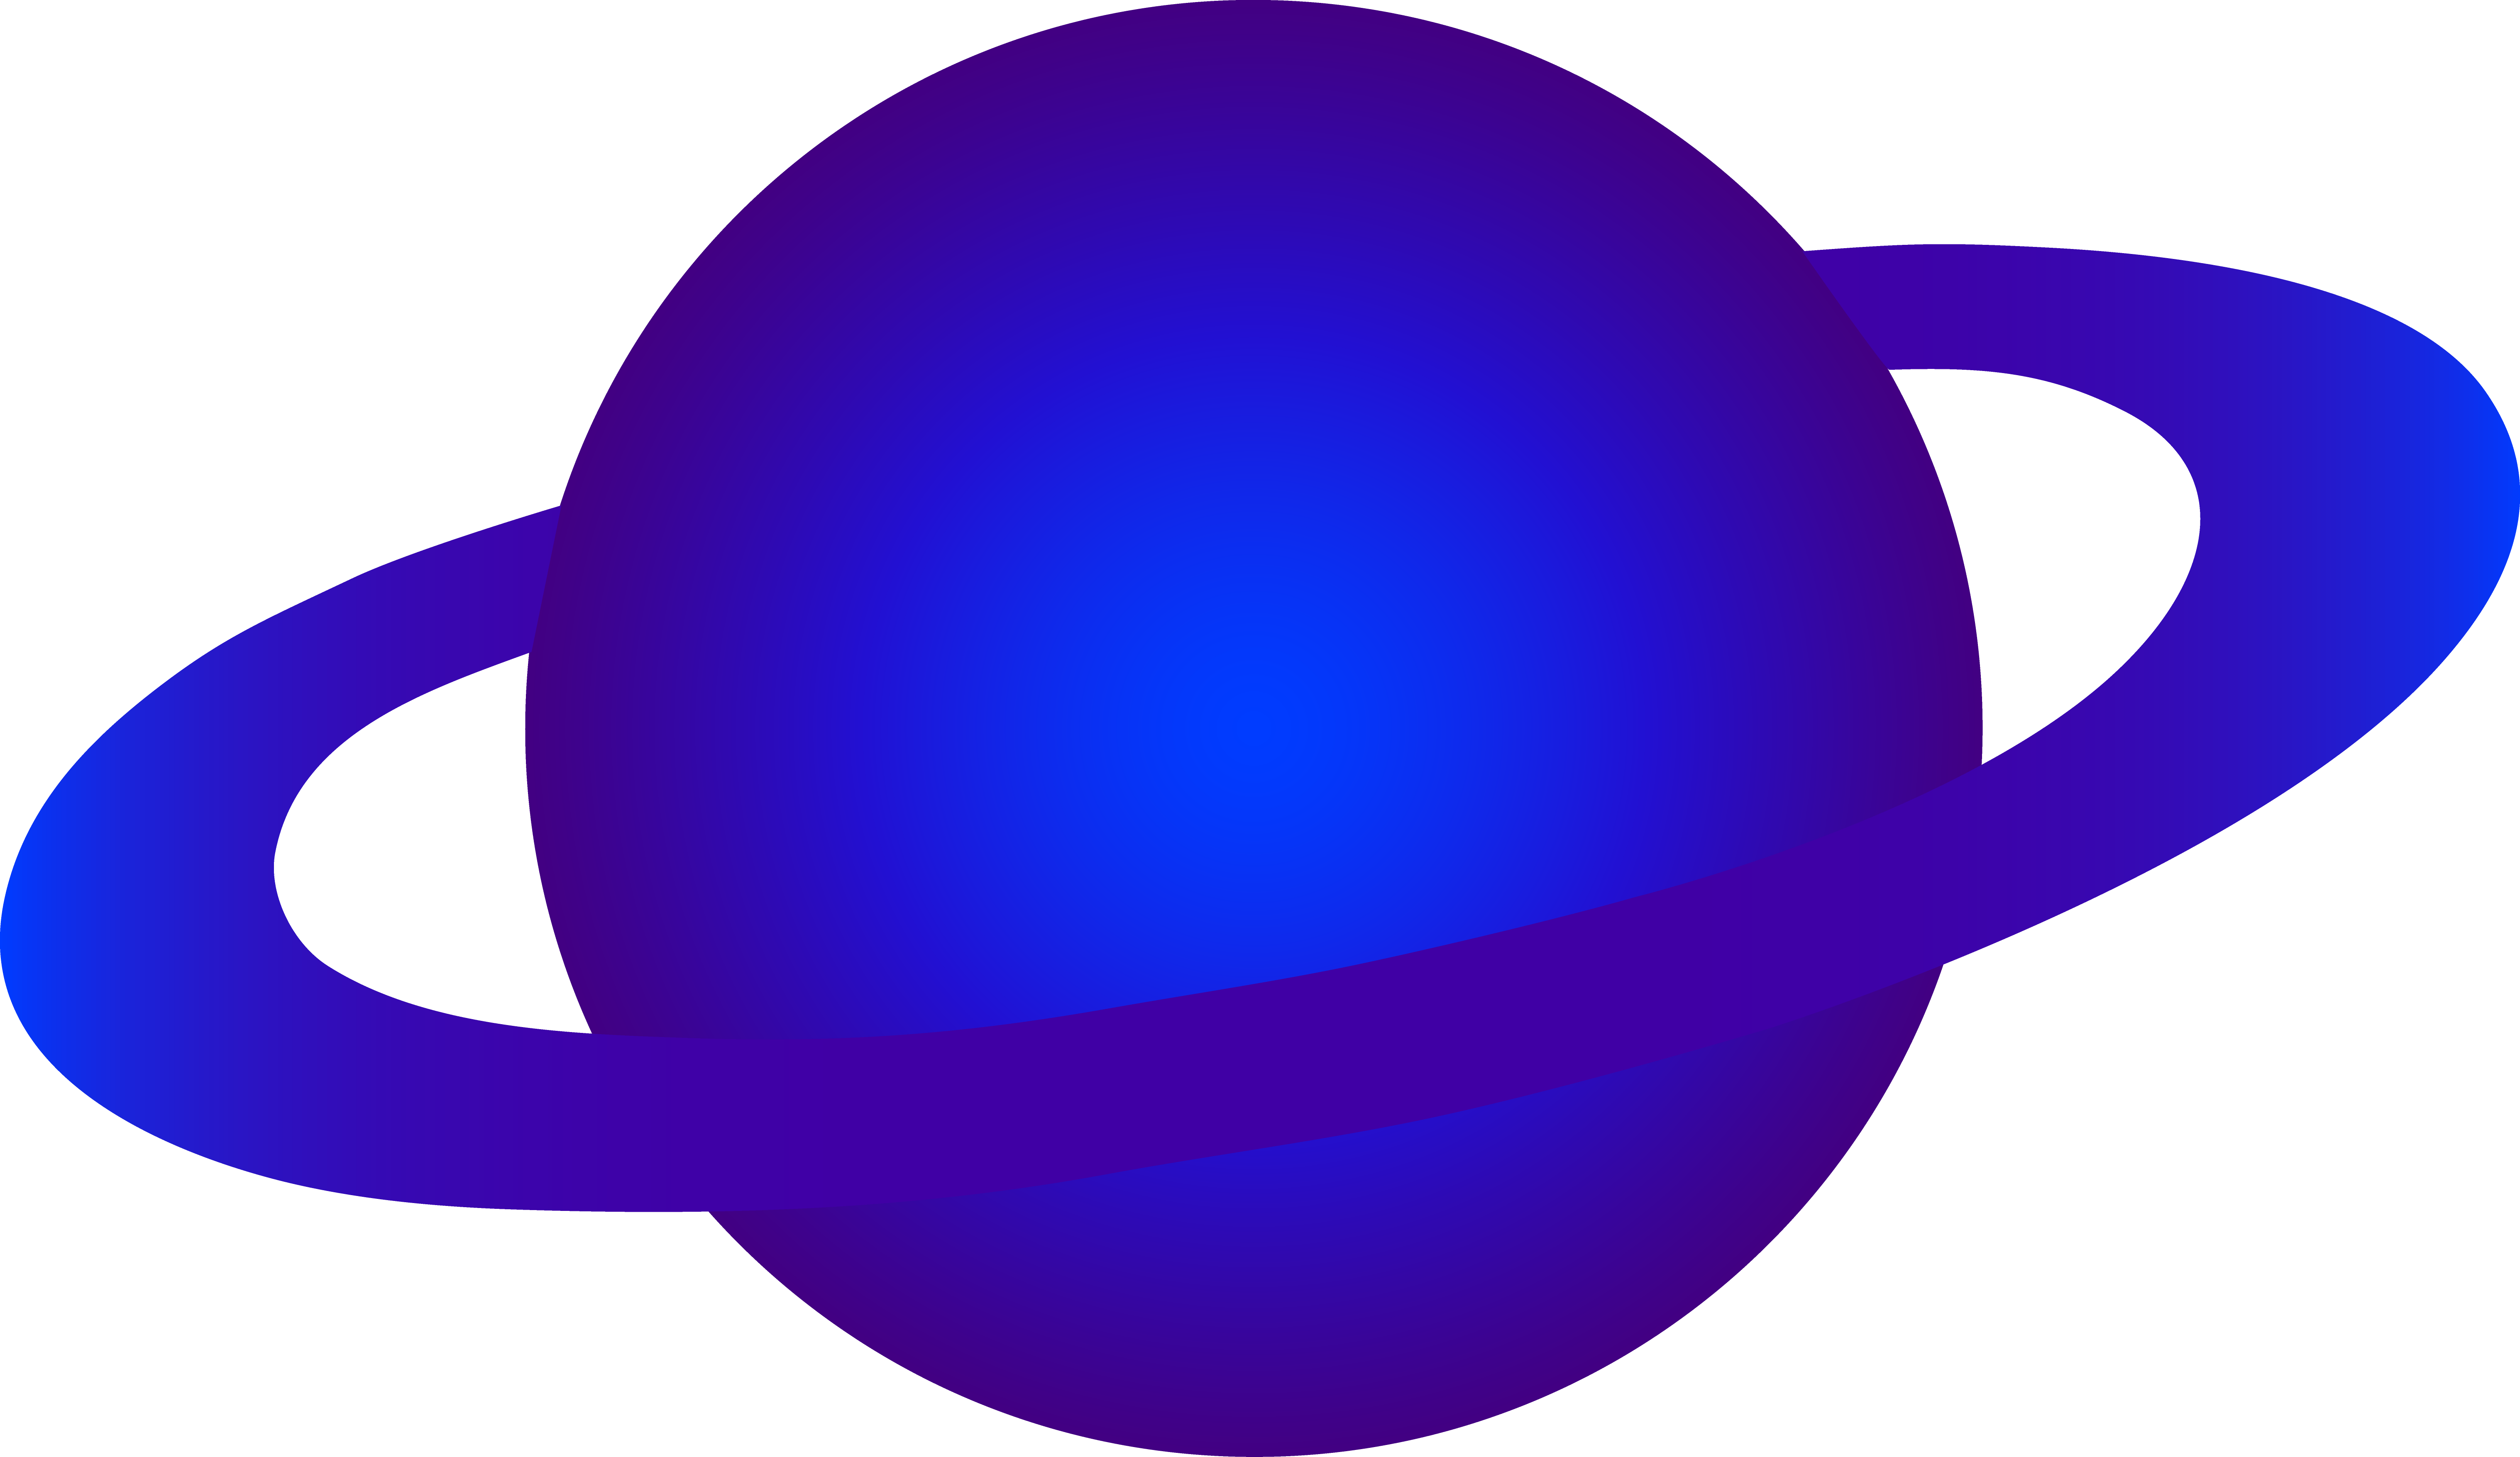 Planeten clipart bumi. Blue alien ringed planet